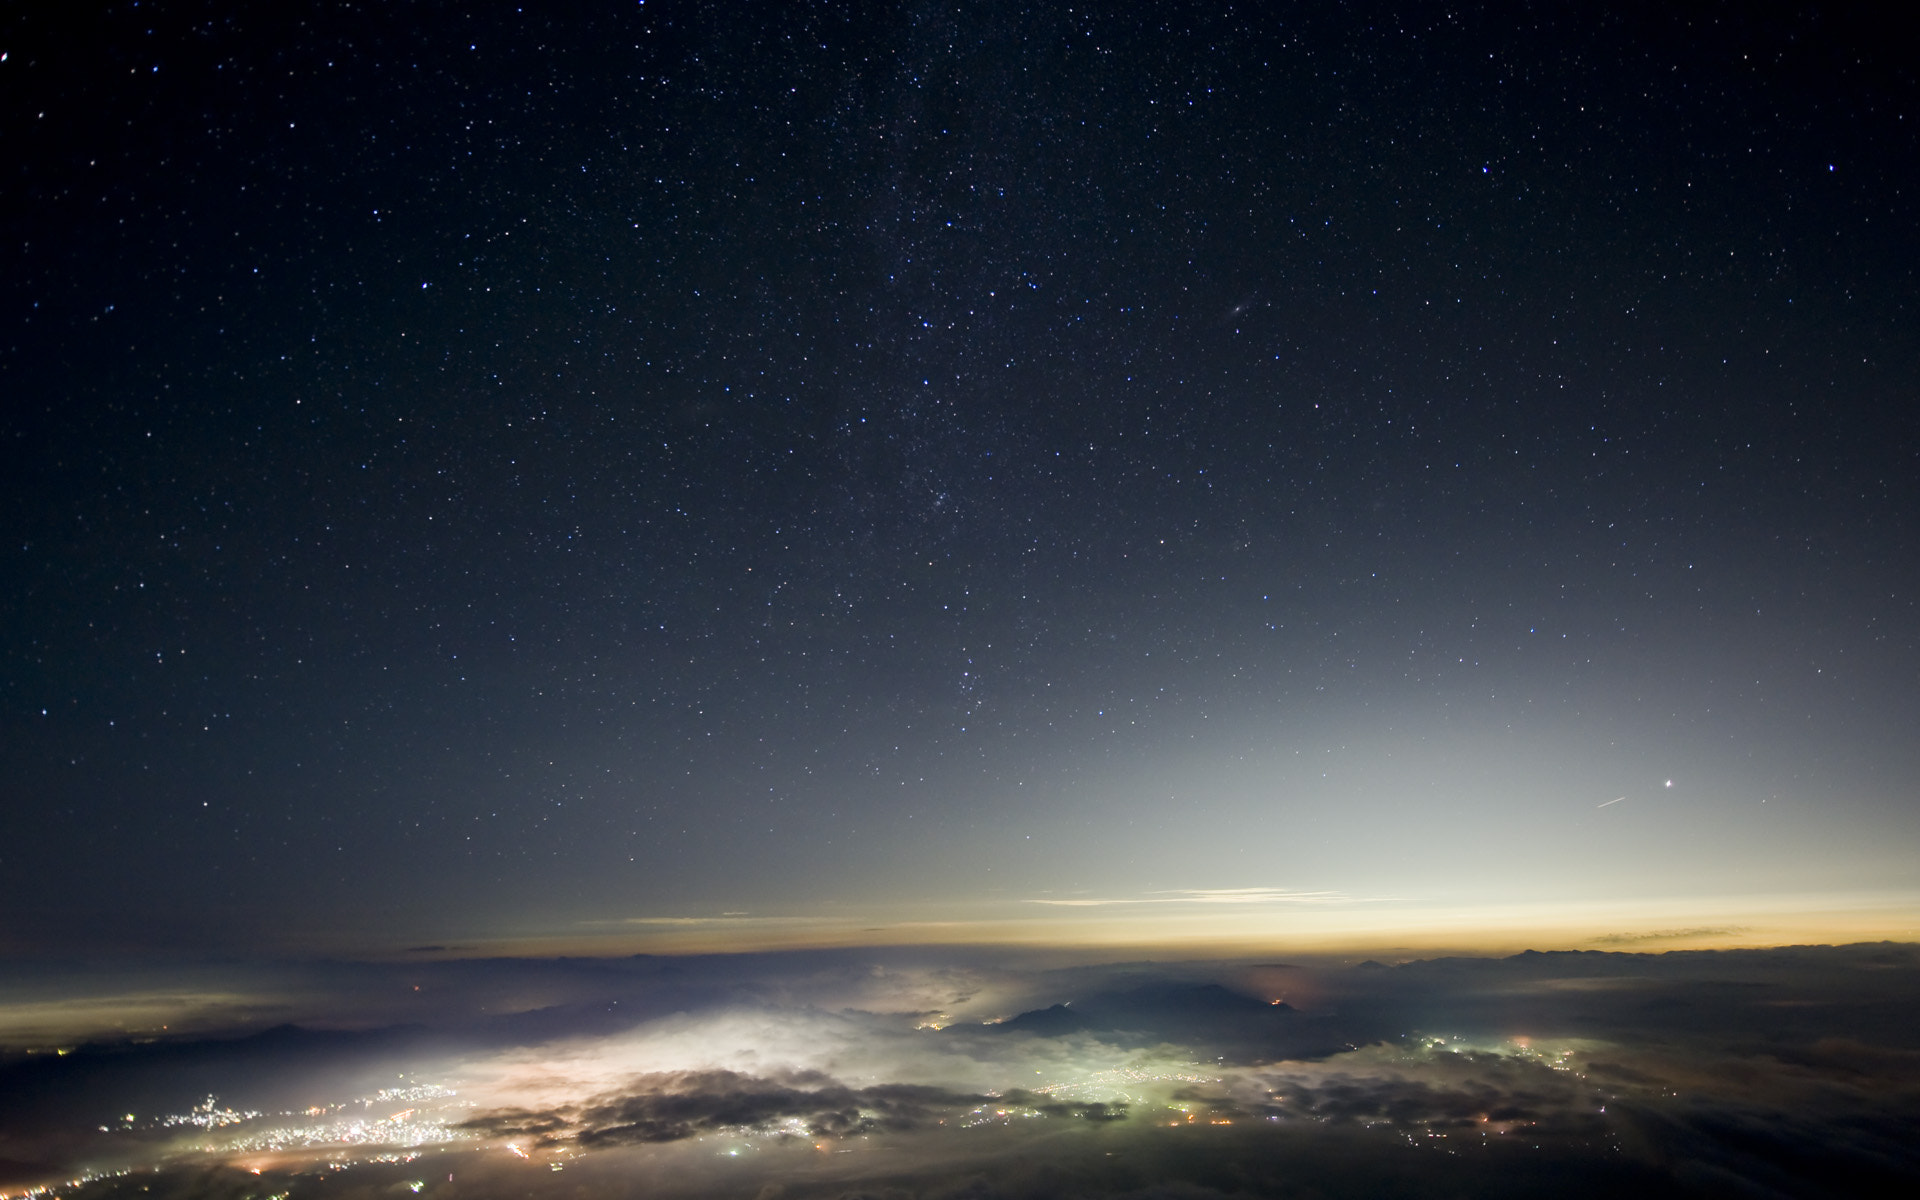 Photograph The night view from Mt. Fuji by Hiroyuki OGURO on 500px